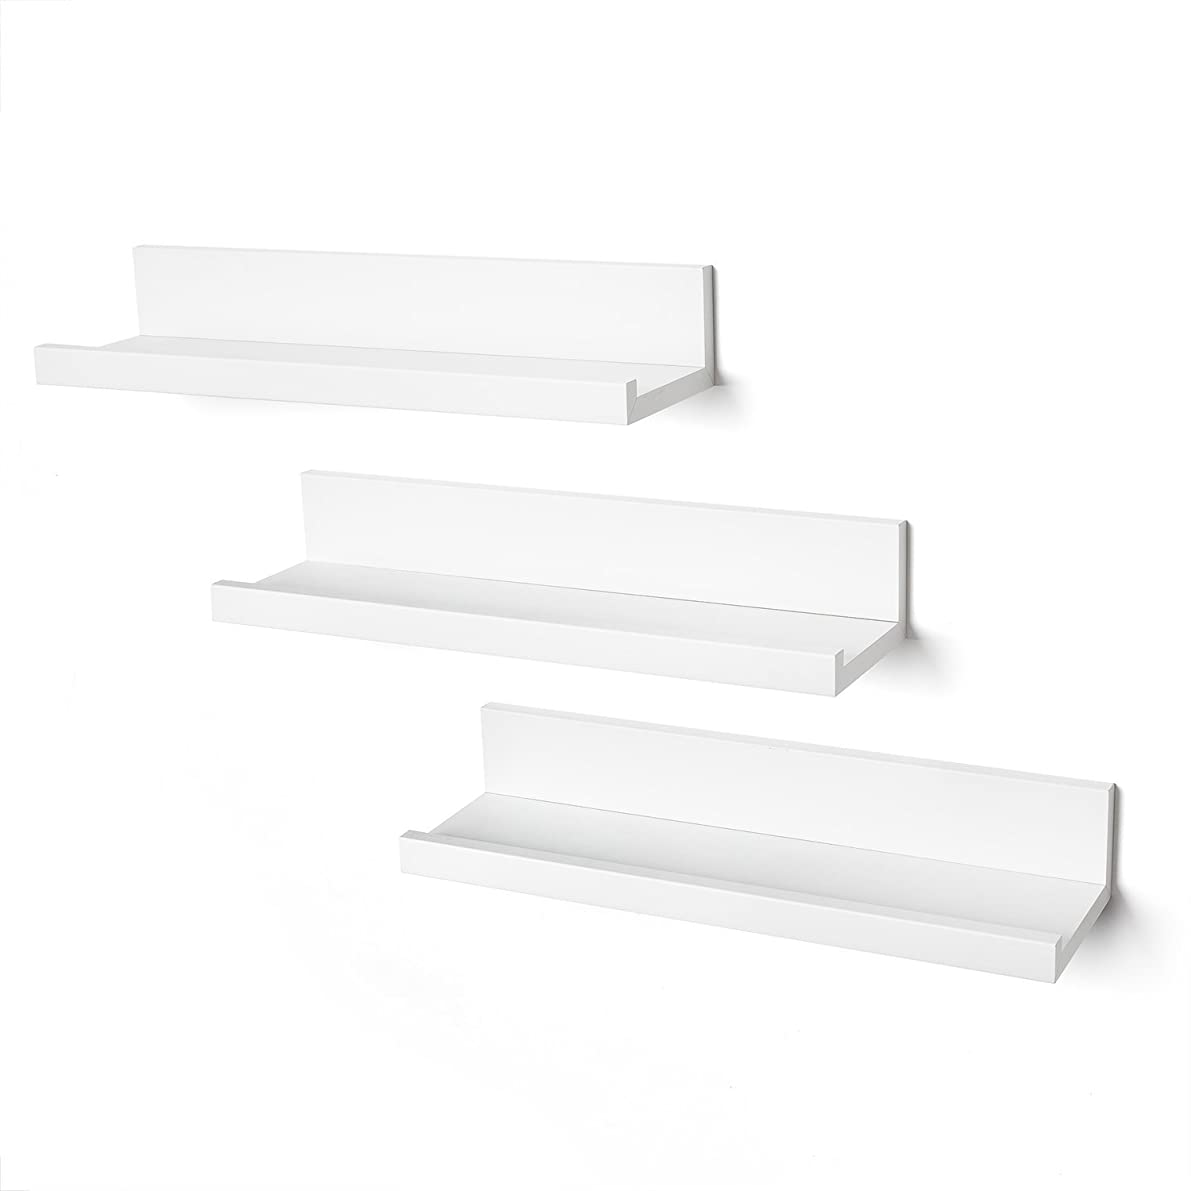 Americanflat Set of Three 14 Inch Floating Wall Shelves - White,